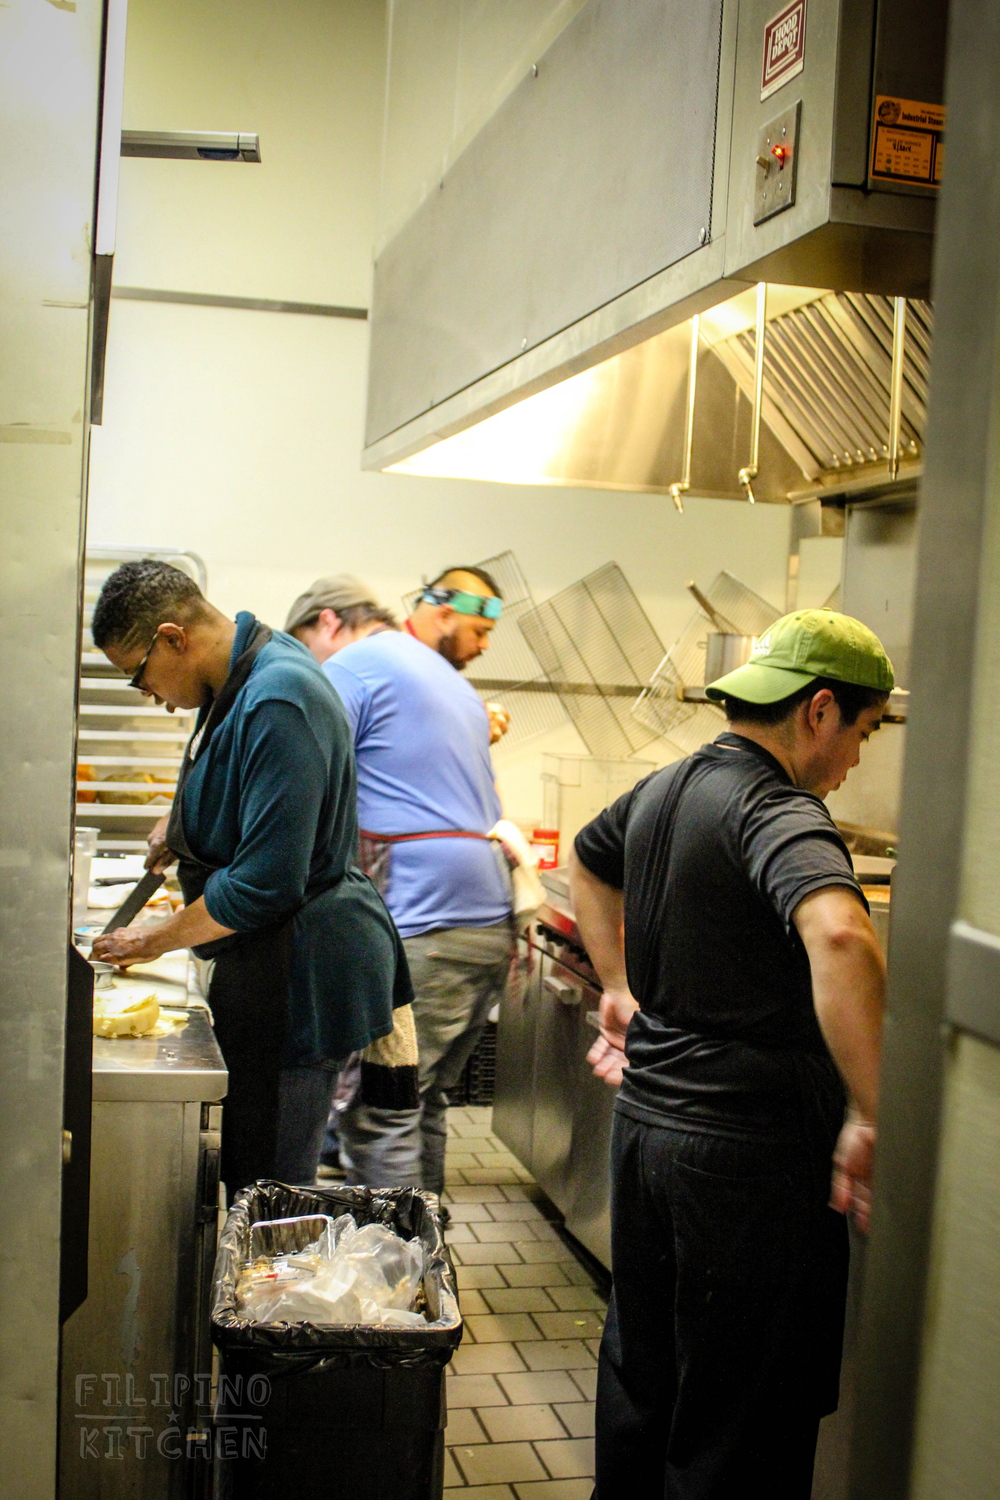 Chefs Maranda, Tony, AC and Anthony (left to right) busy prepping dinner.